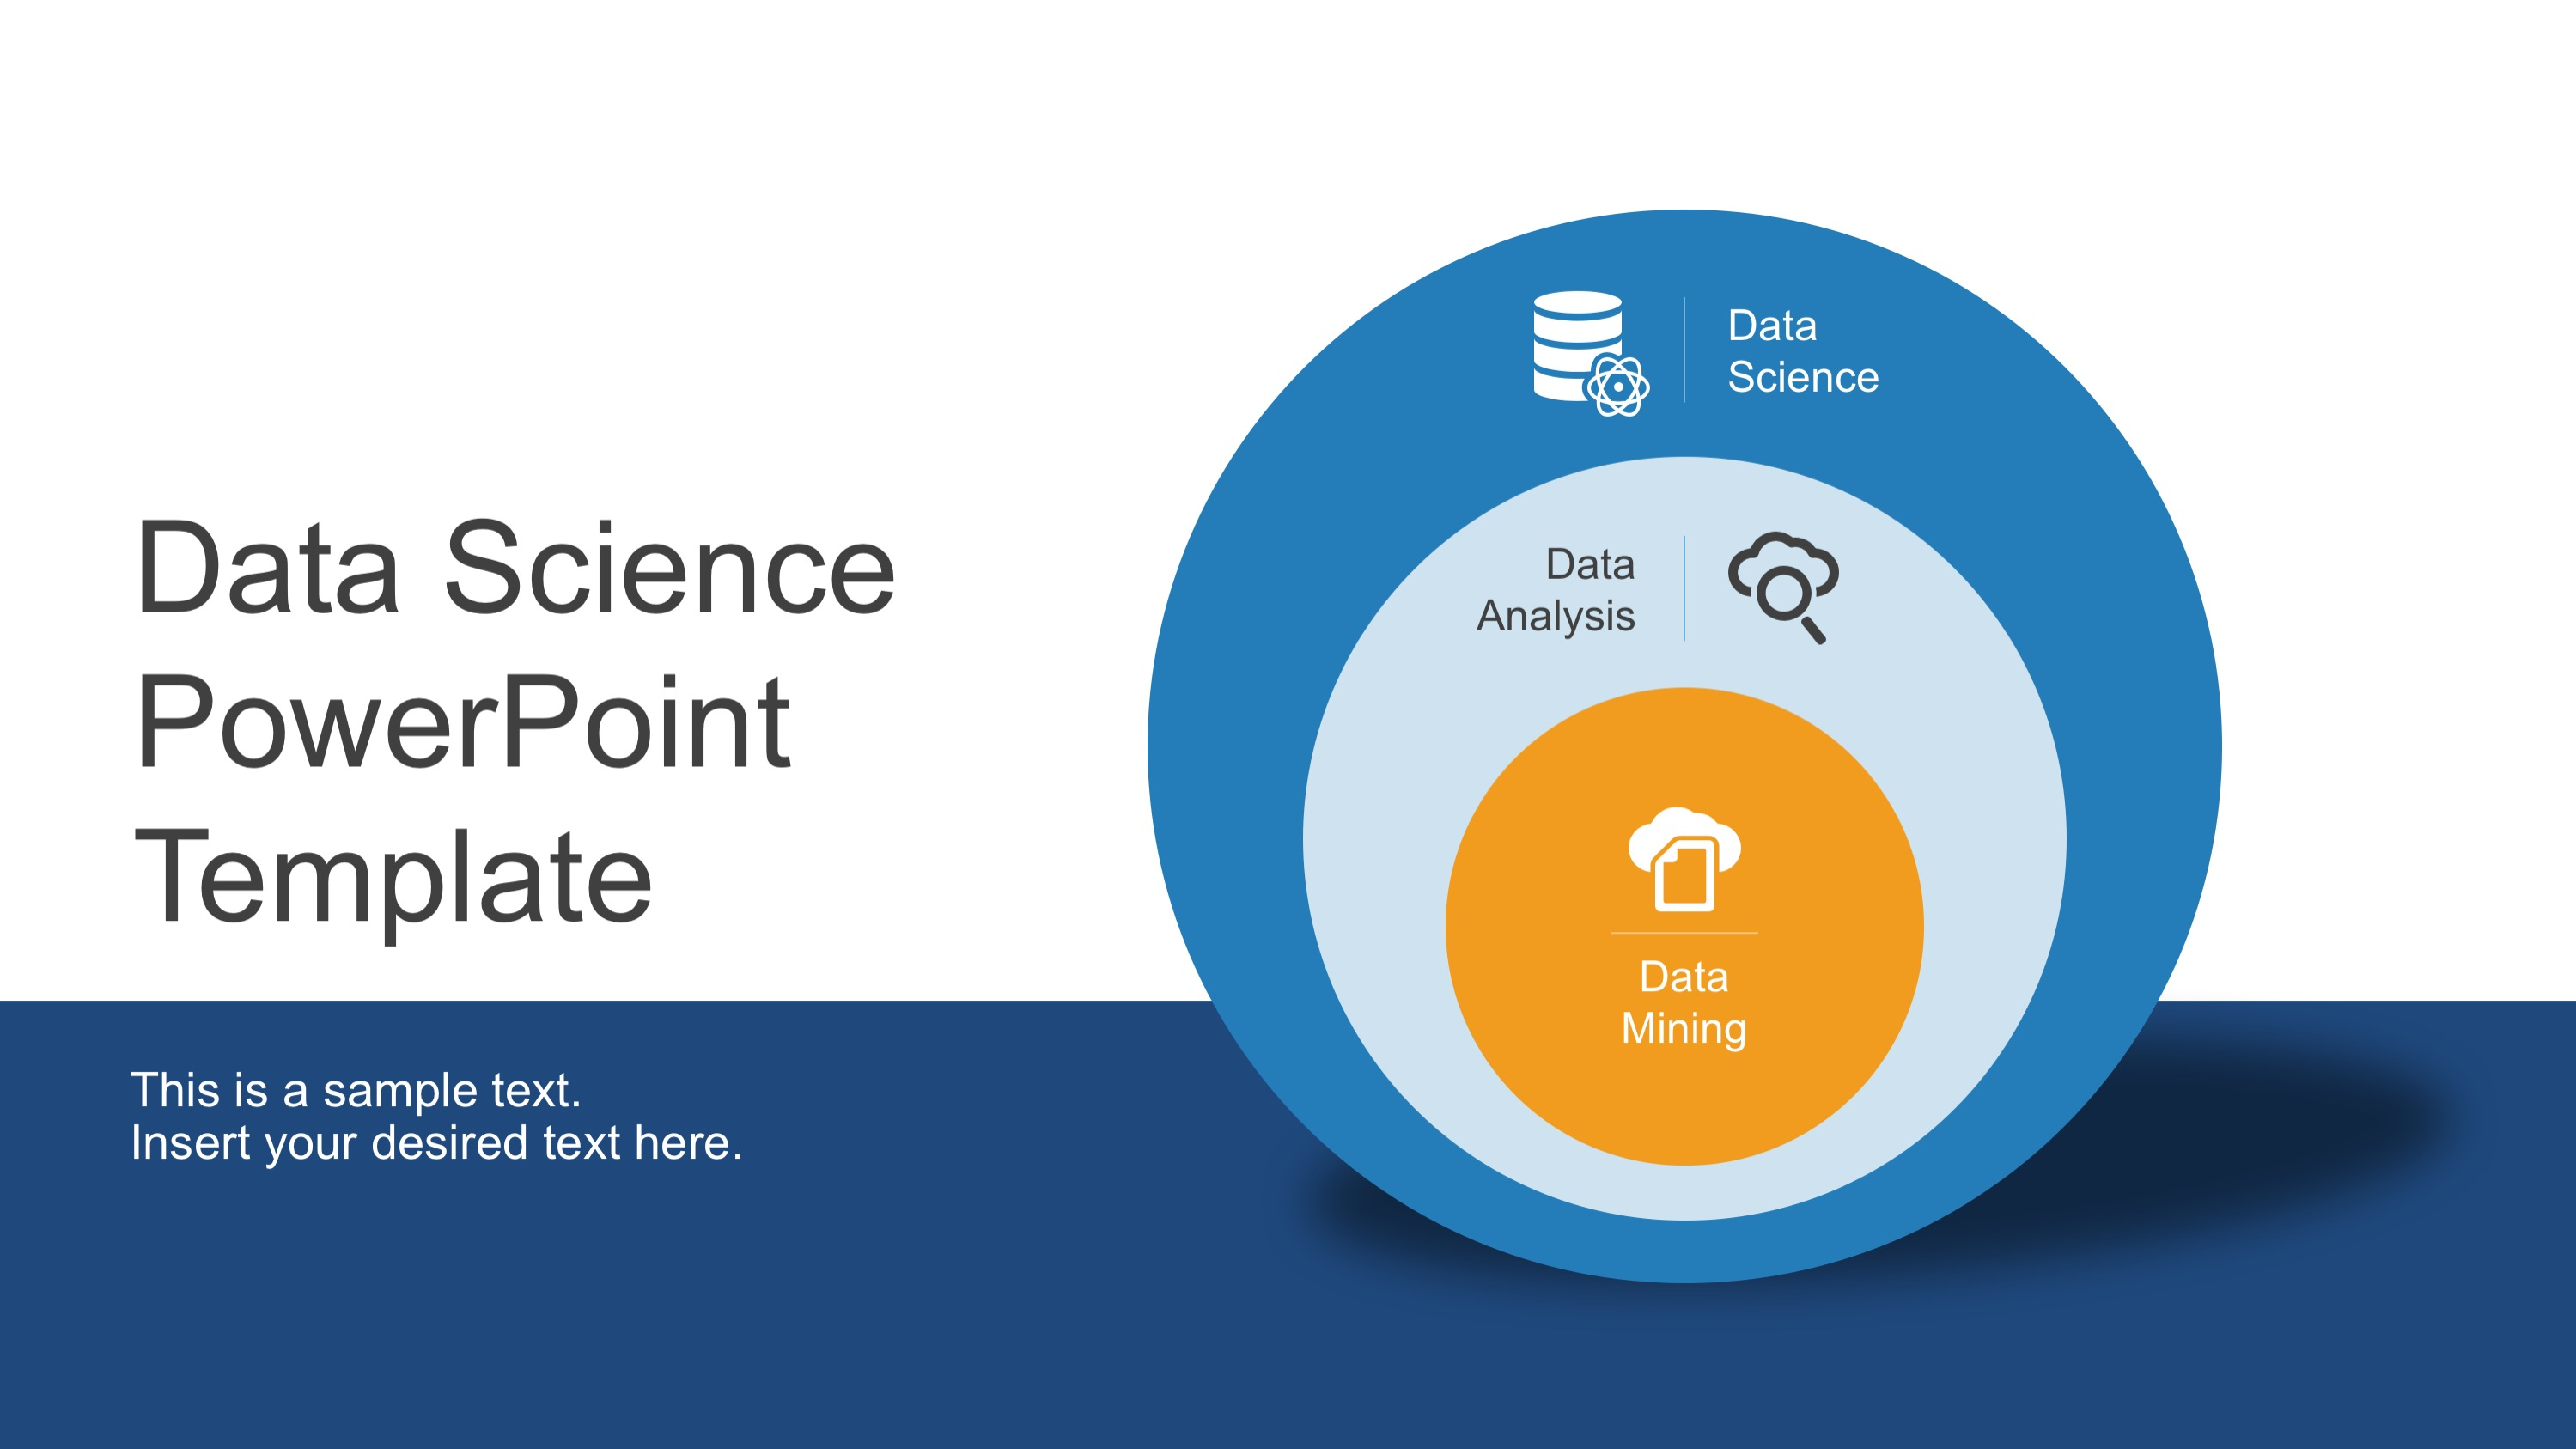 Data science shapes powerpoint template slidemodel data science shapes powerpoint template toneelgroepblik Images